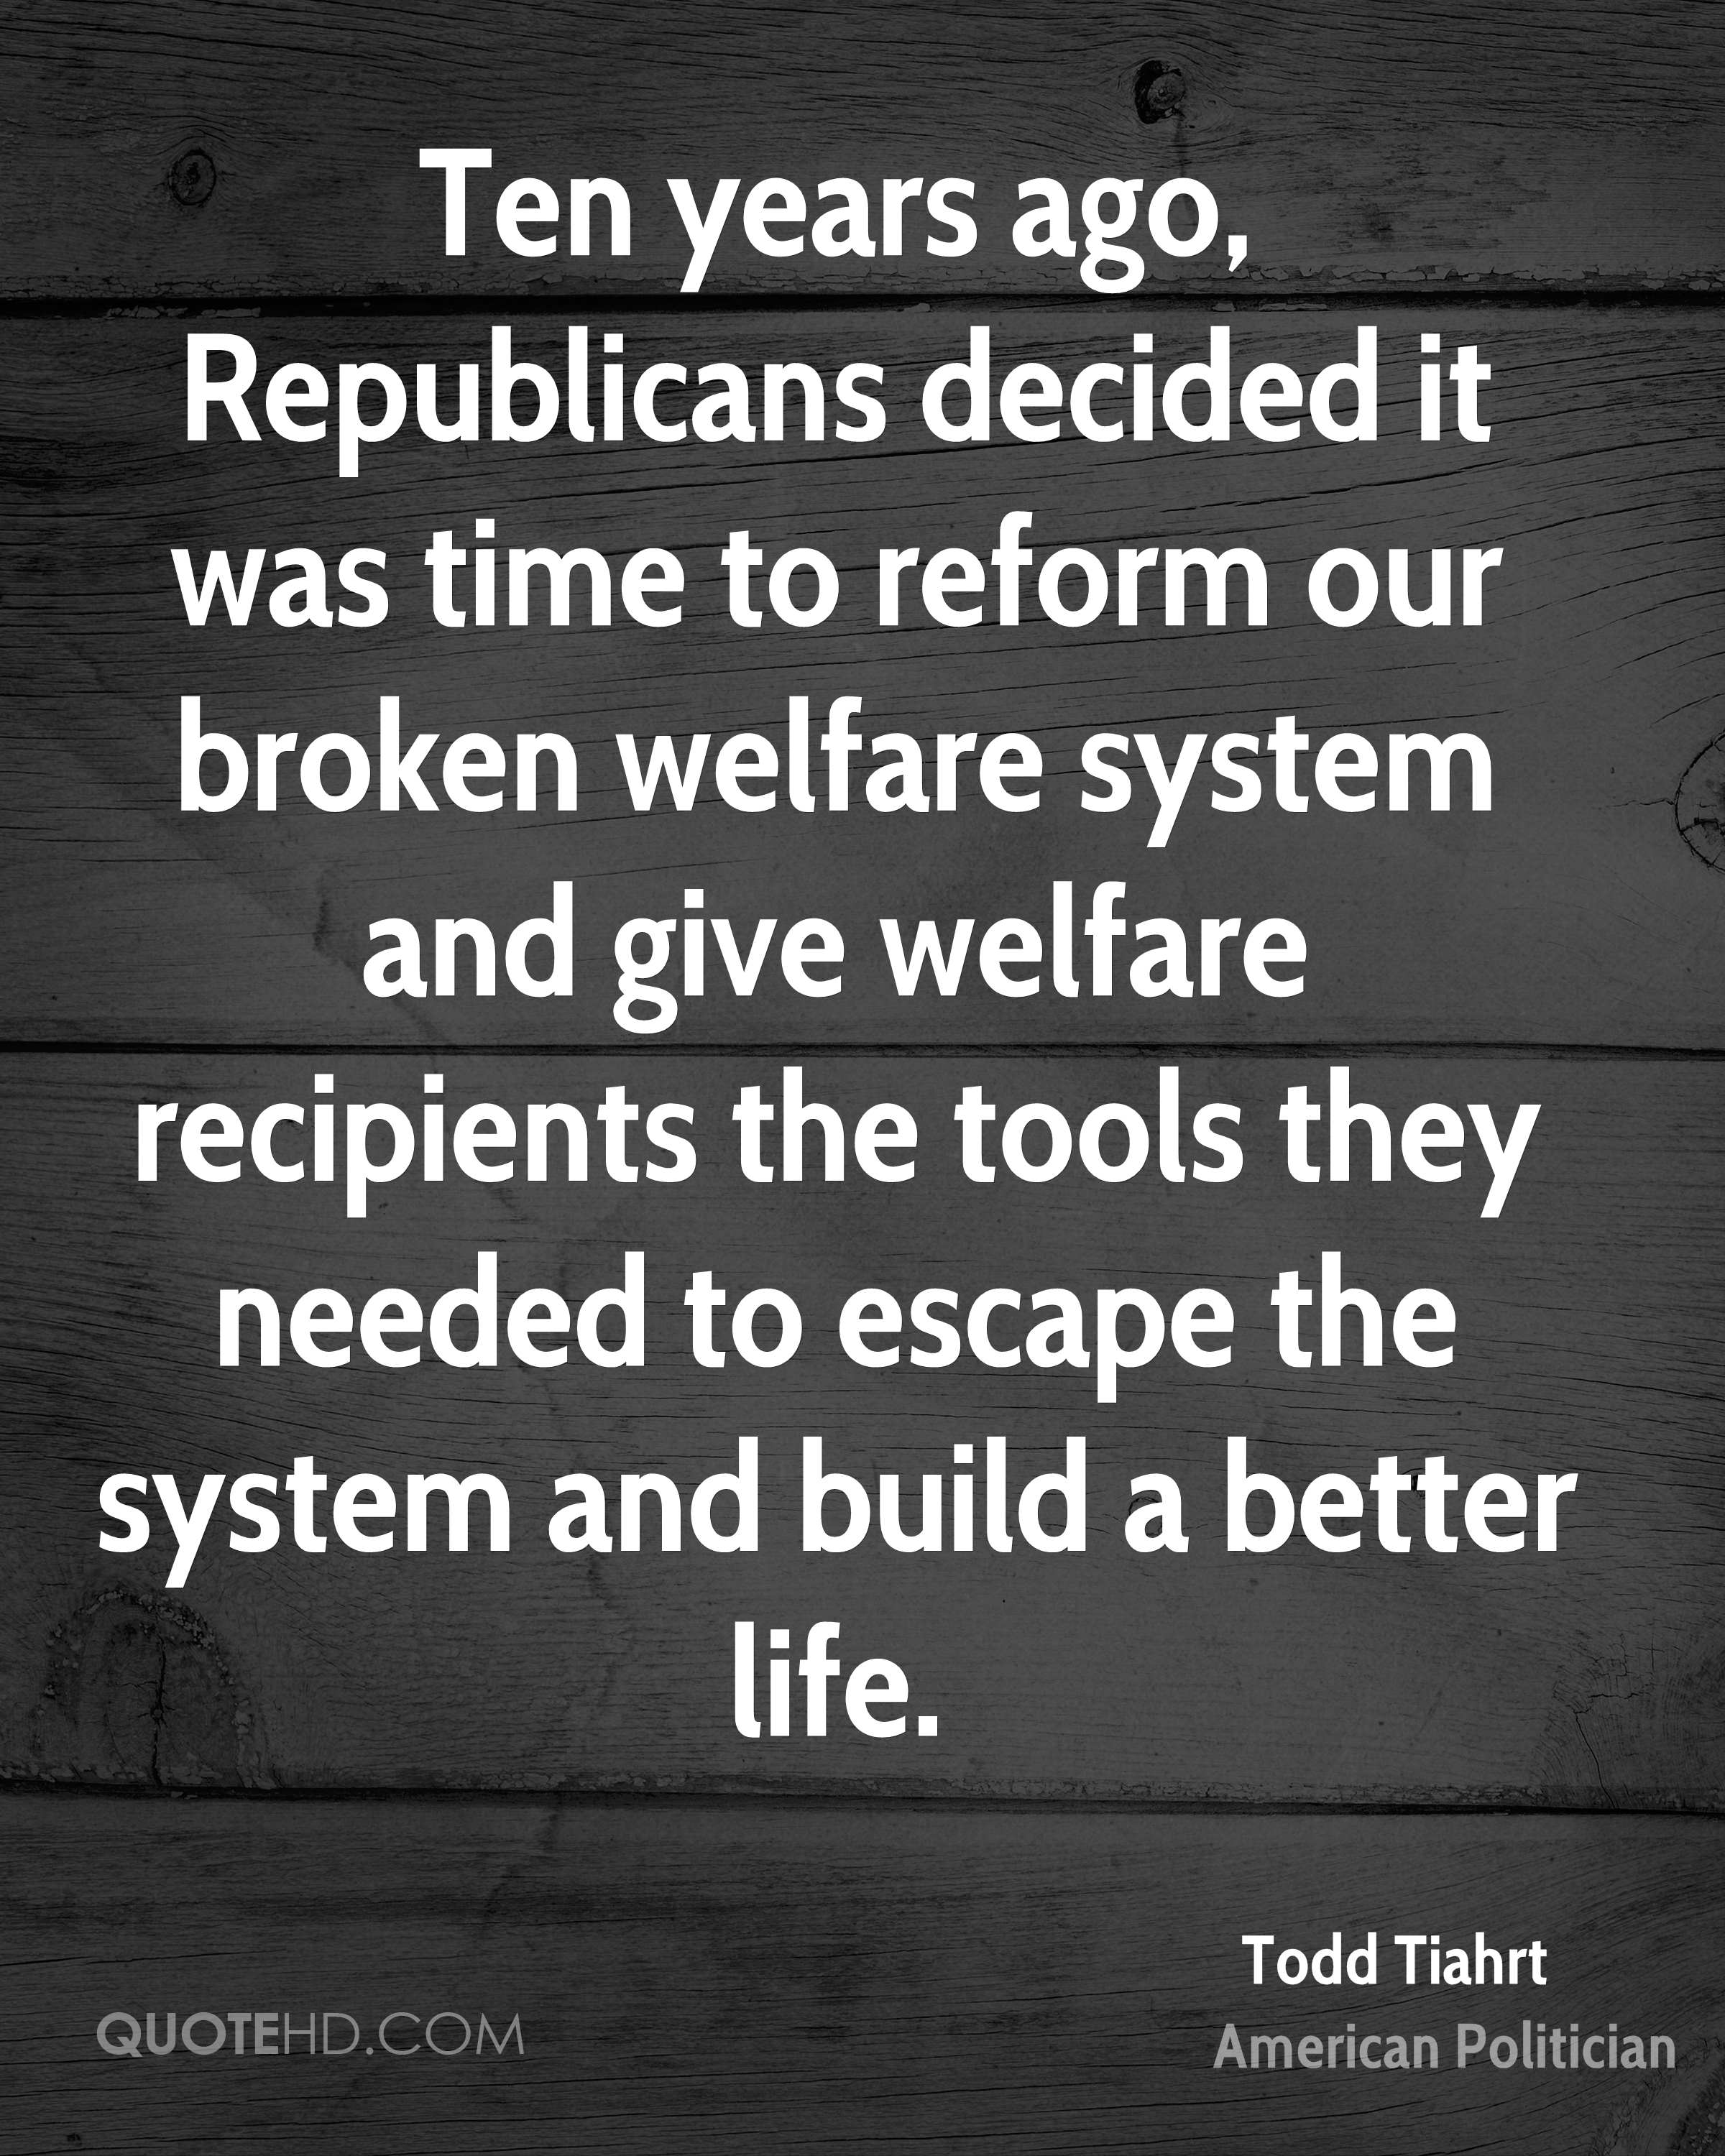 Ten years ago, Republicans decided it was time to reform our broken welfare system and give welfare recipients the tools they needed to escape the system and build a better life.